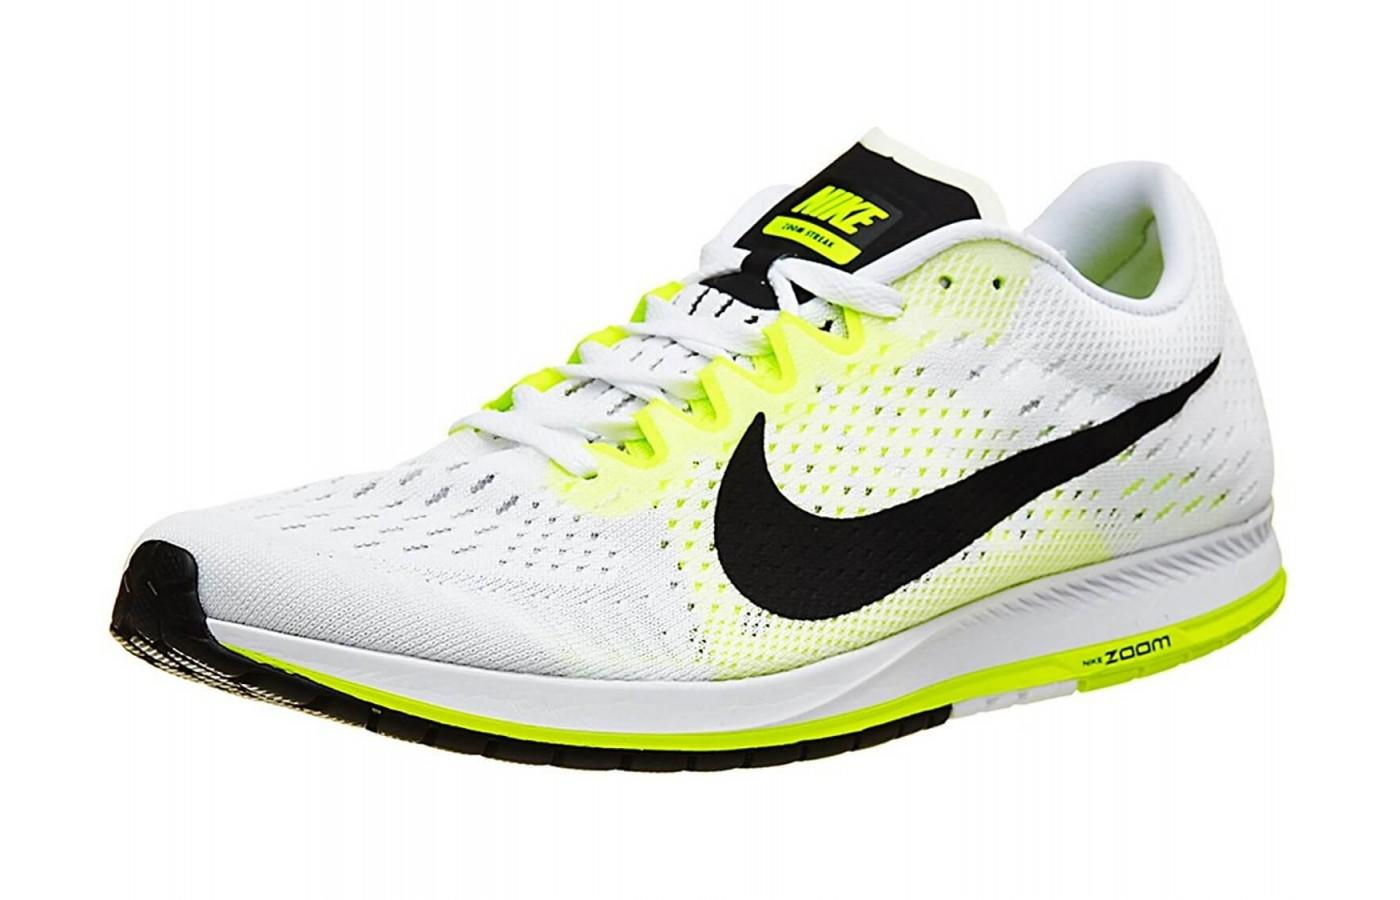 Nike Air Zoom Streak 6 is a neutral racing flat